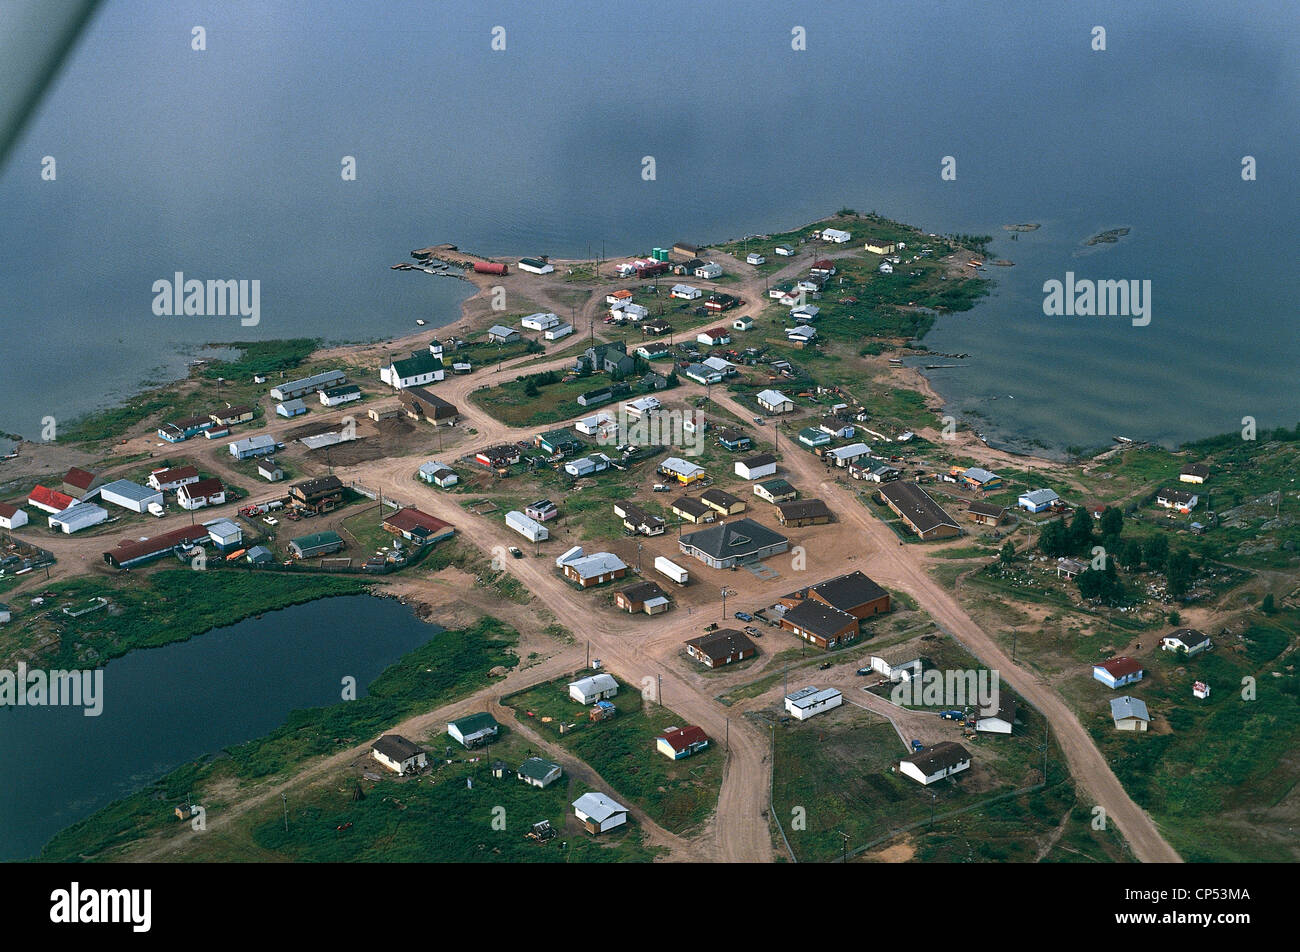 Canada - Northwest Territories - Fond du Lac, Cree Indian village on Lake Athabasca. Aerial view. - Stock Image